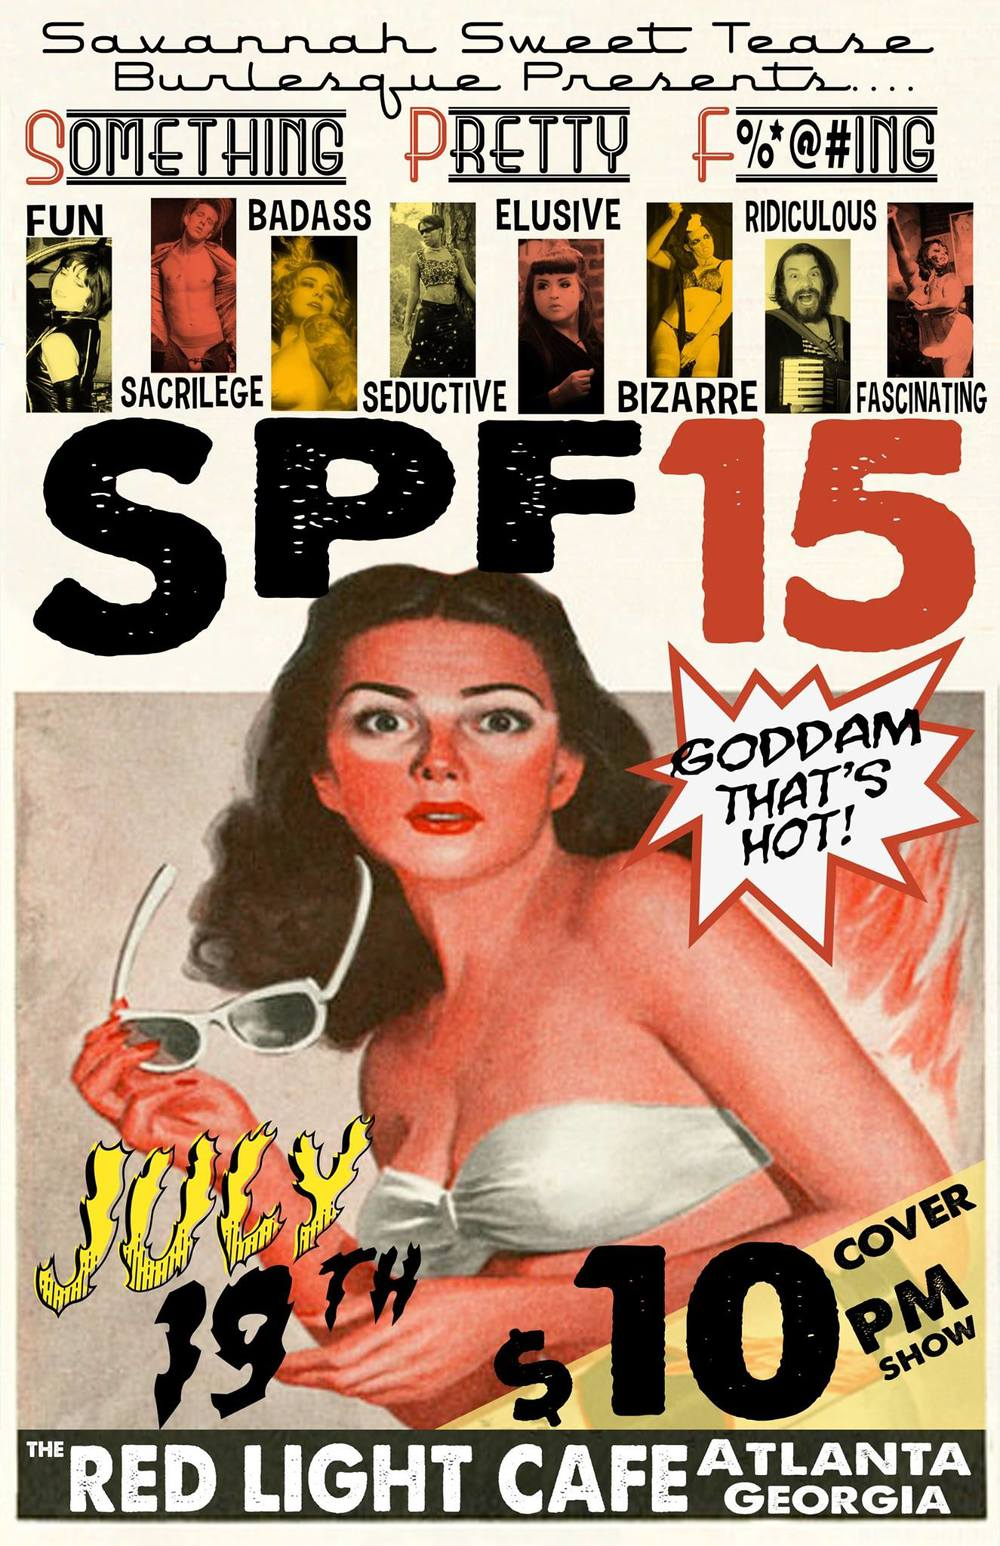 The Savannah Sweet Tease Burlesque Revue Present: SPF 15 — July 19, 2015 — Red Light Café, Atlanta, GA